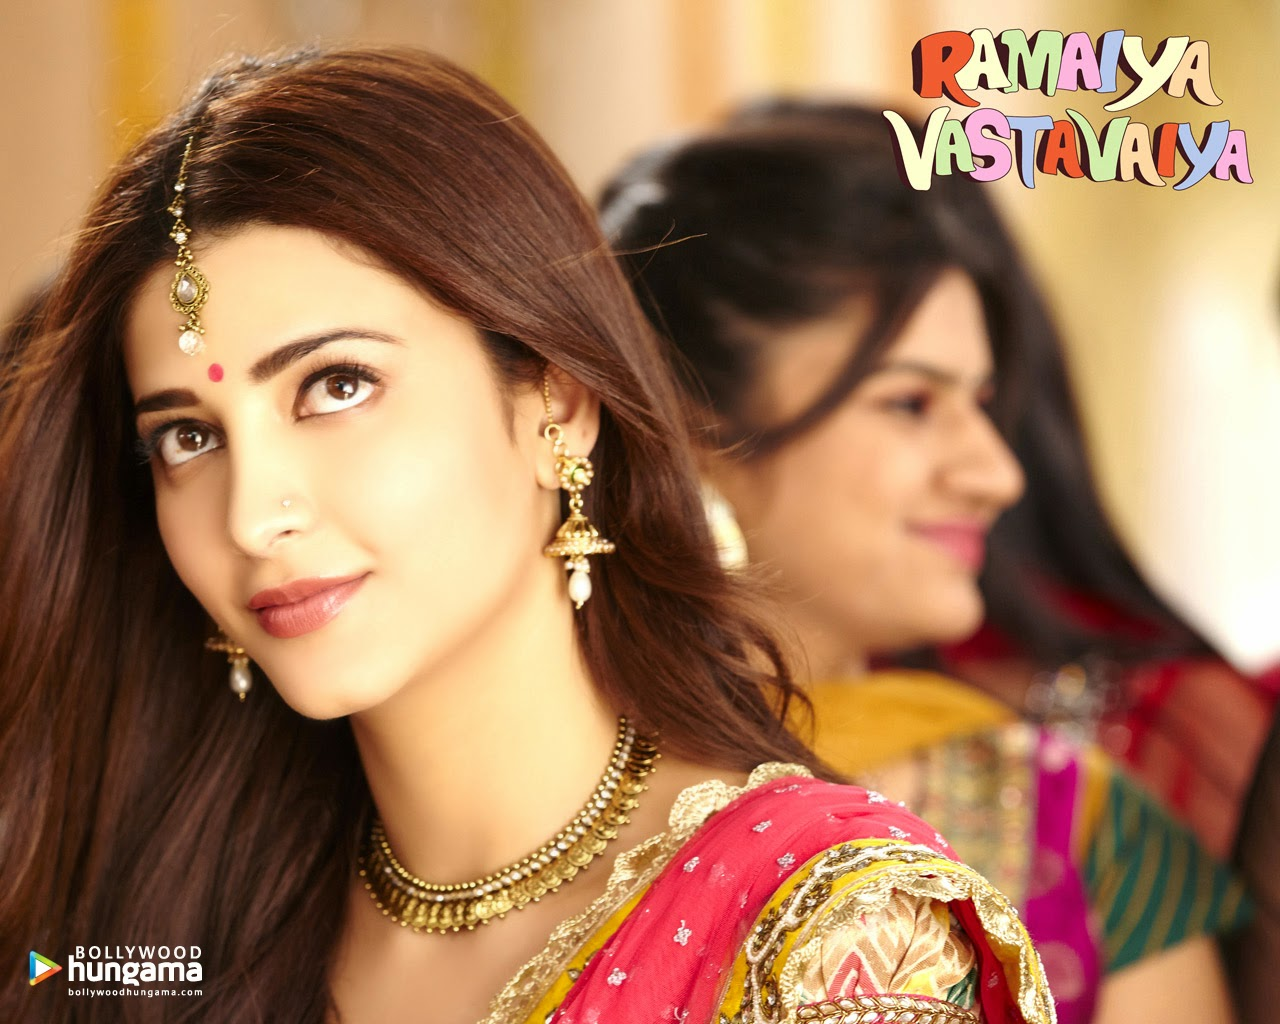 celebritywallss: ramaiya vastavaiya movie wallpapers 2013